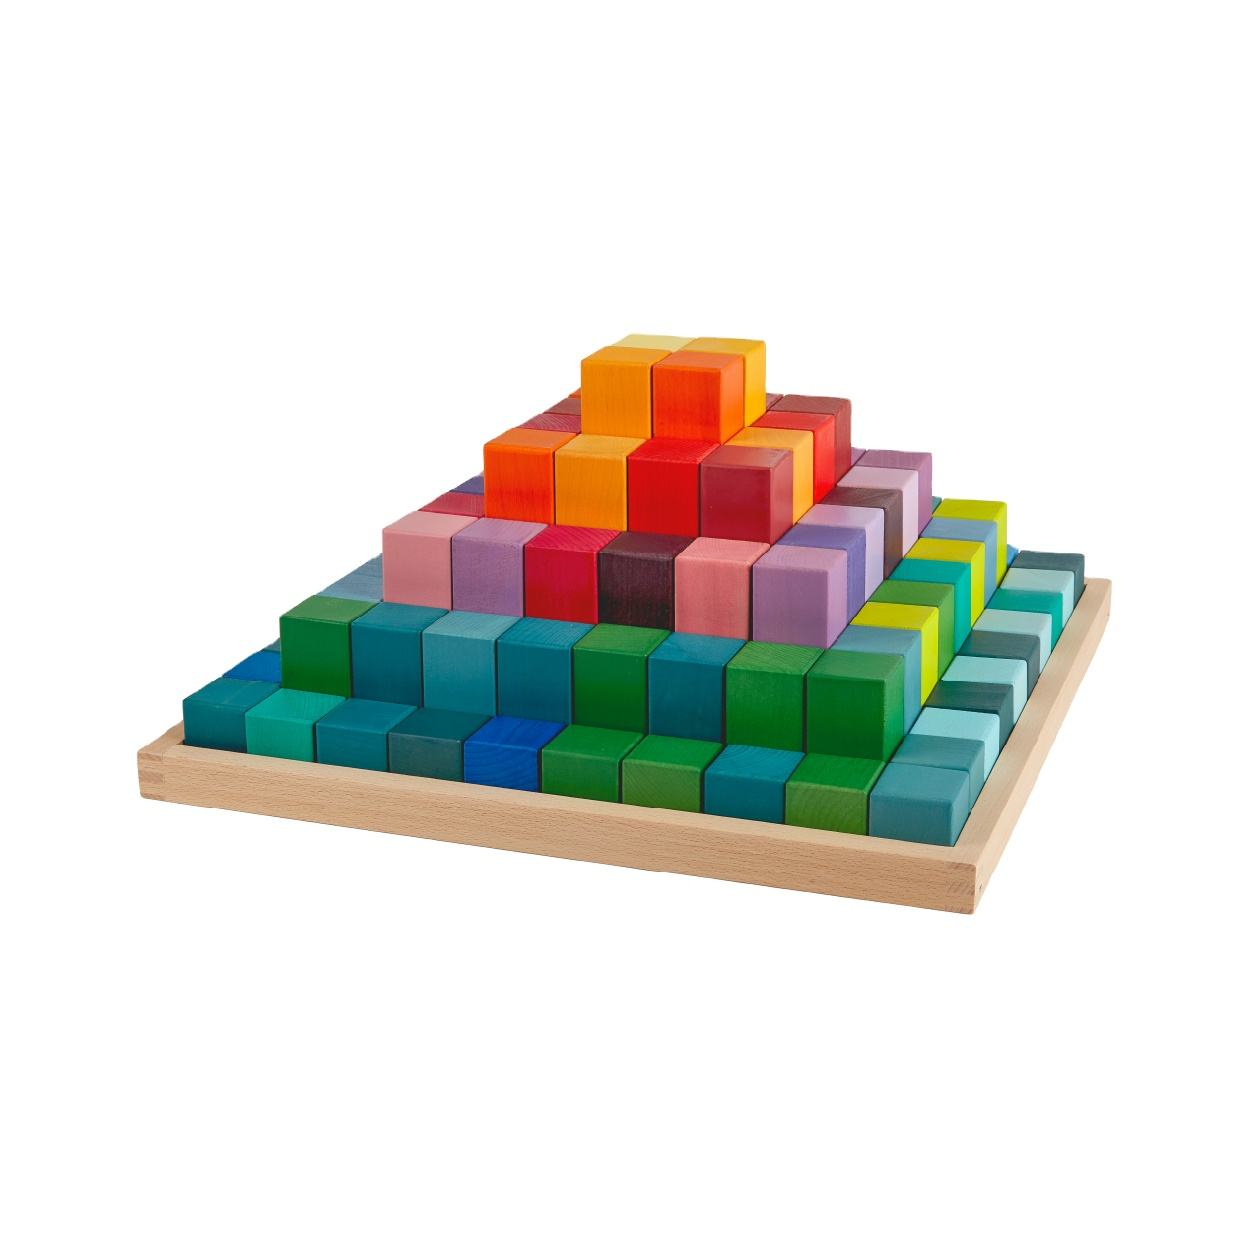 Rainbow Pyramid Infants Wooden Toys Set Kids Educational Early Teaching Diy Toy 100 pcs Rainbow Blocks